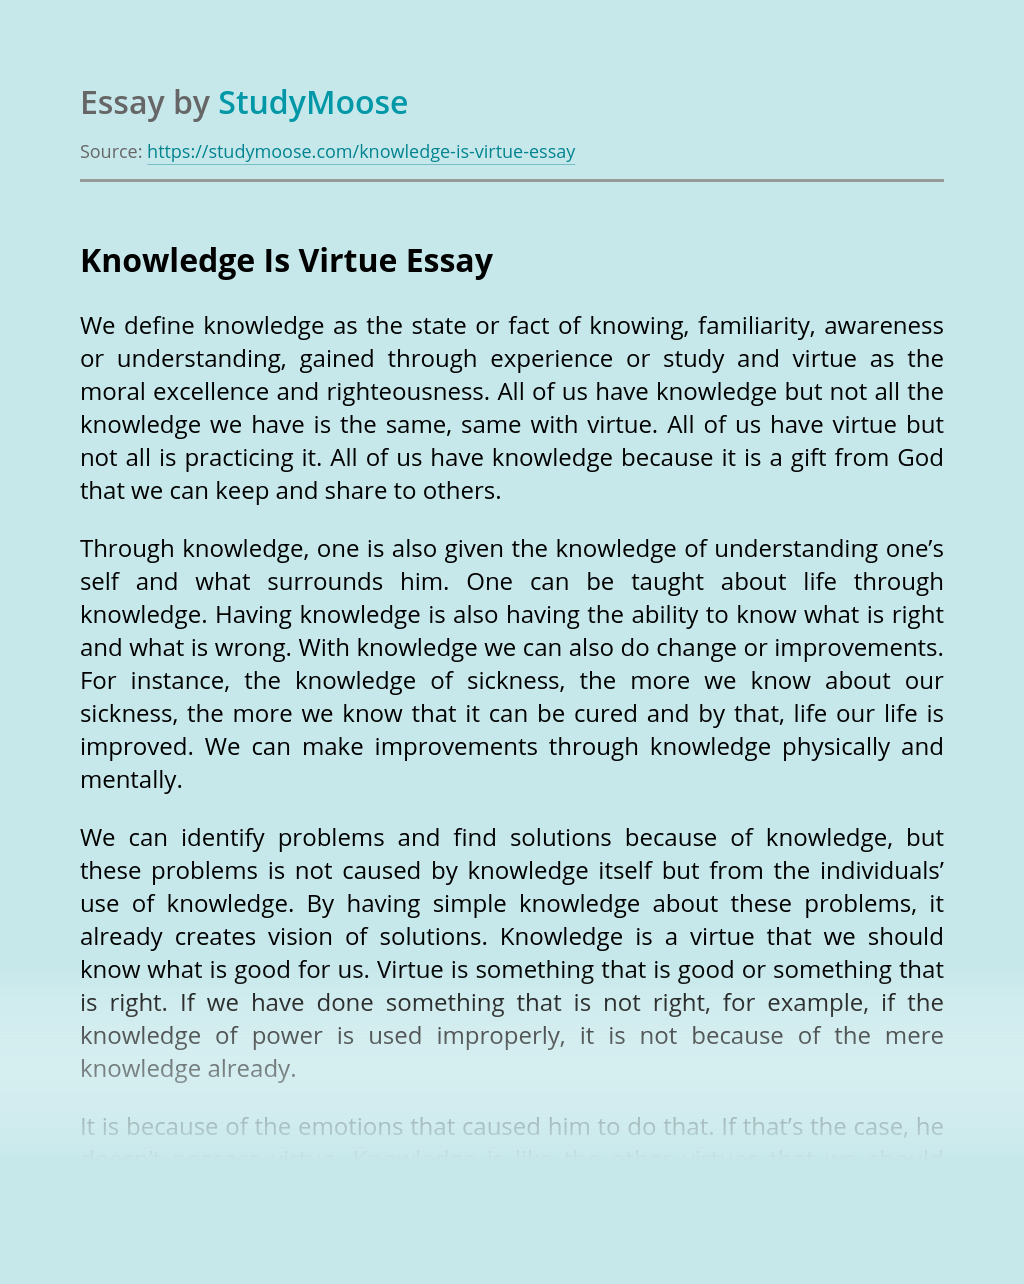 Knowledge Is Virtue